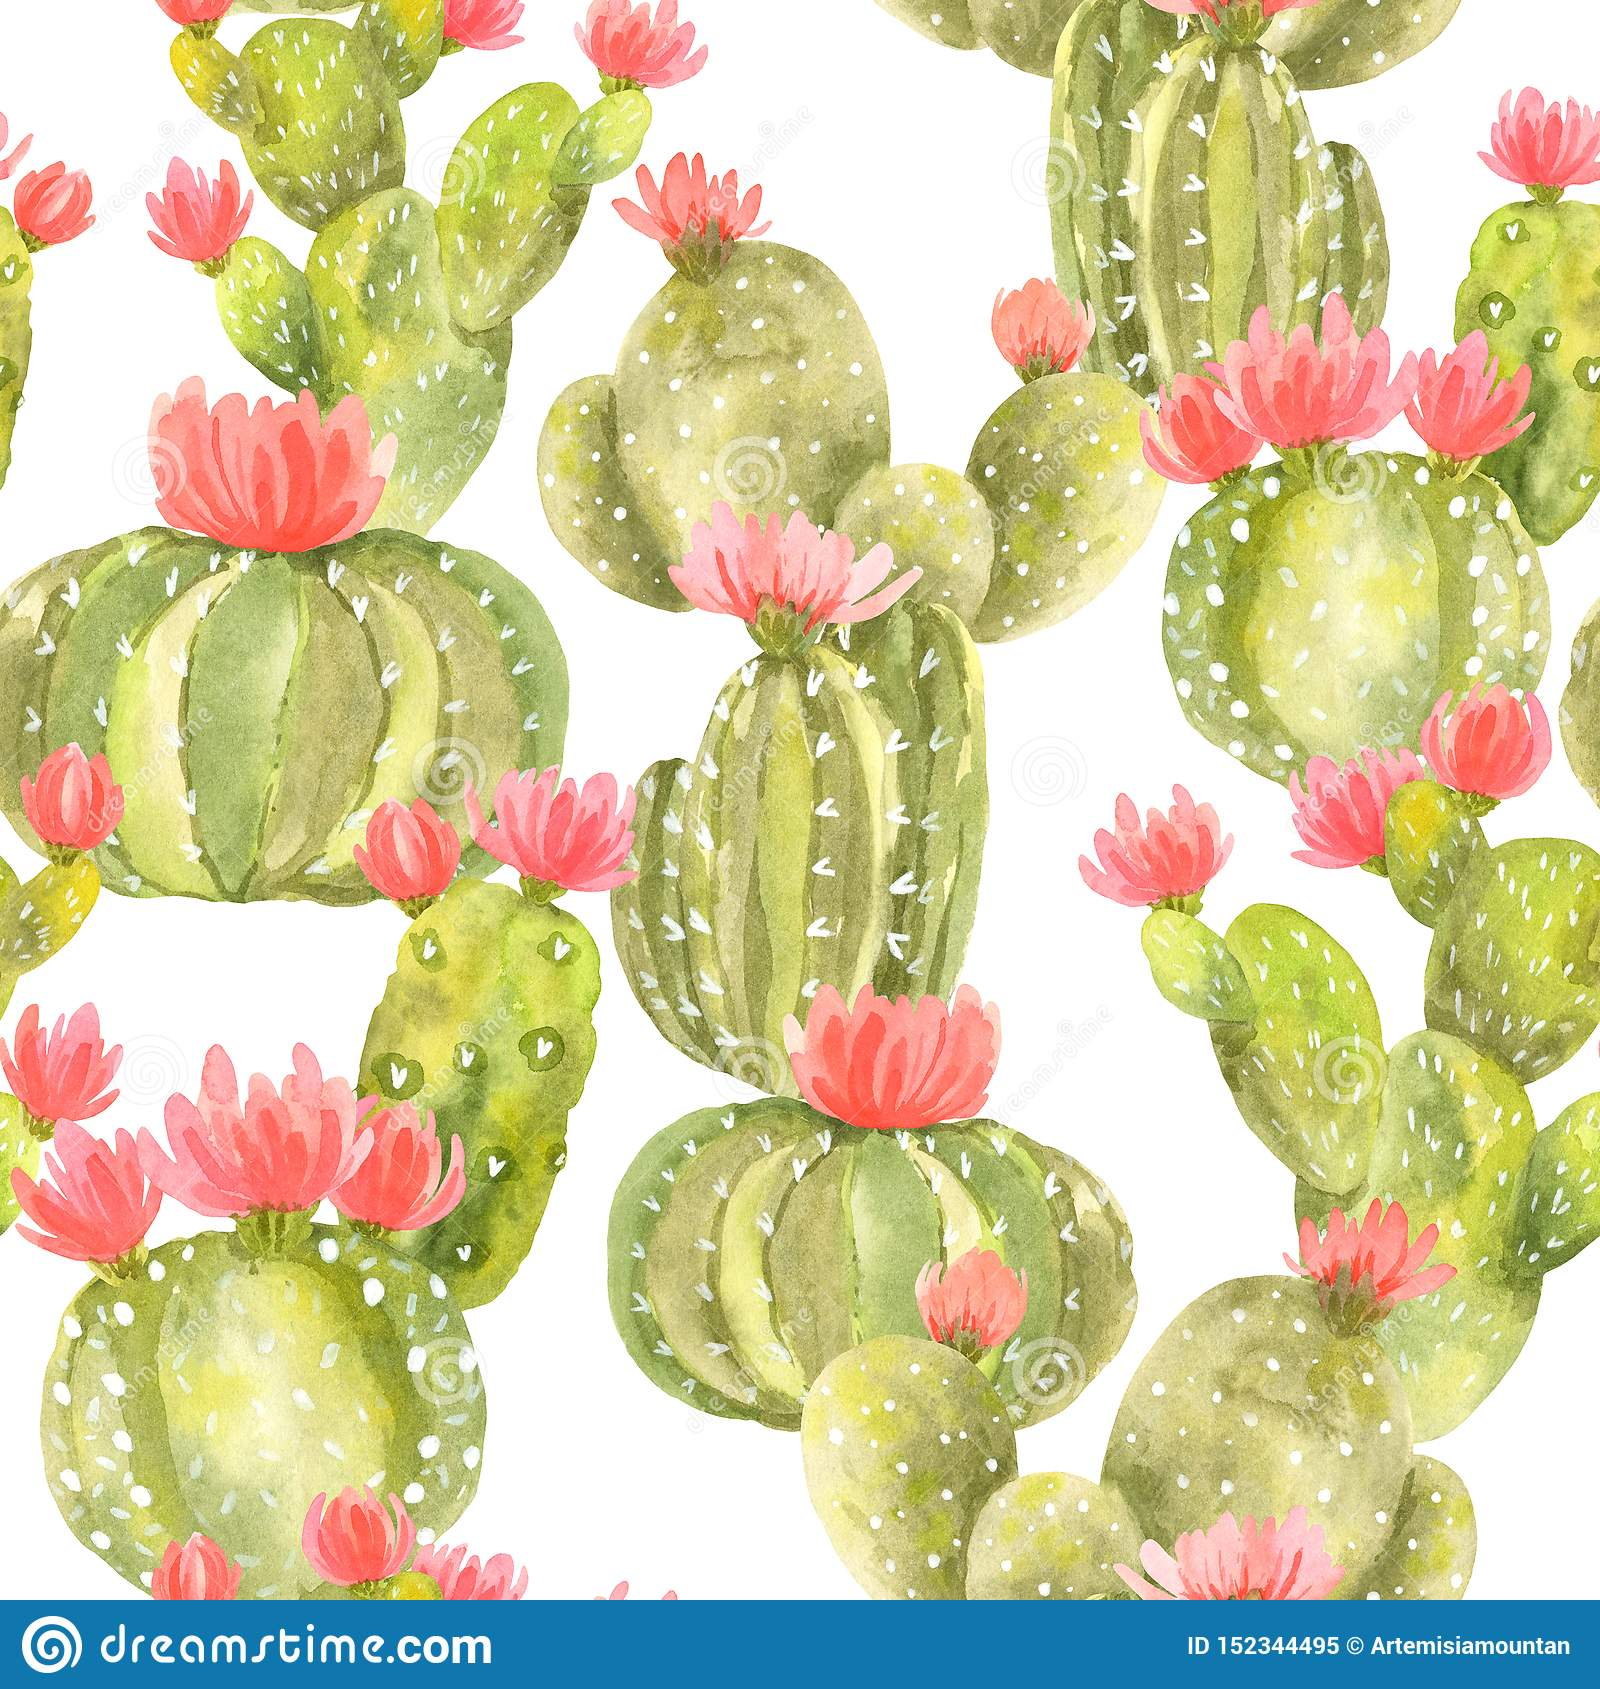 Seamless Pattern Of Cute Cactus With Pink Flowers Stock Illustration Illustration Of Bright Cactus 152344495